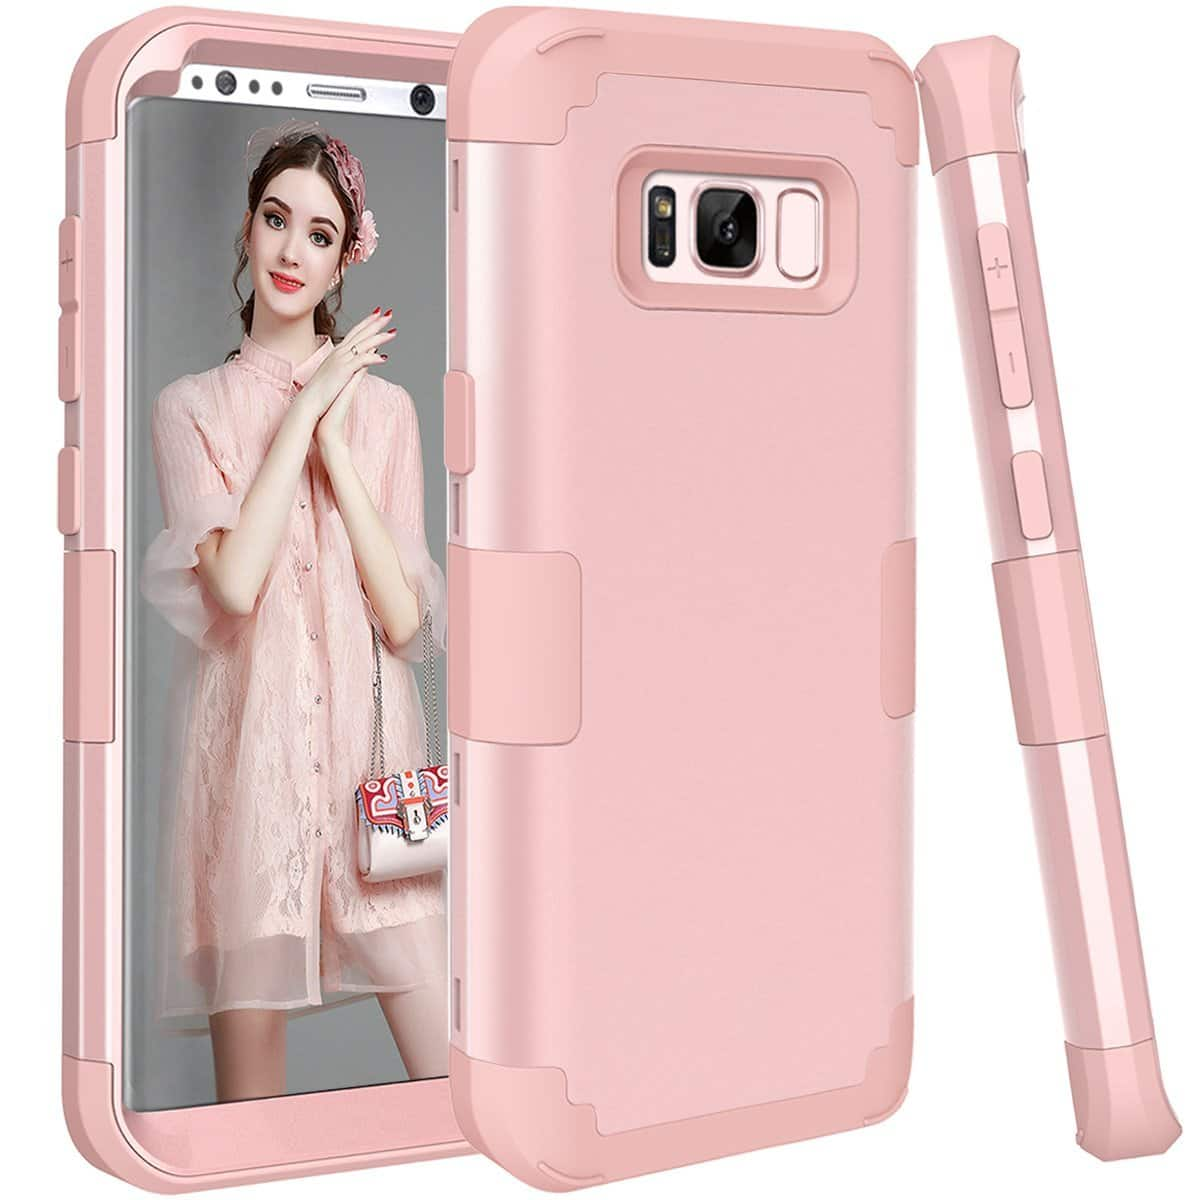 iPhone X, Samsung Galaxy S8 & S8 Plus Cases (Rose Gold color only) $2 after 80% off code + FS